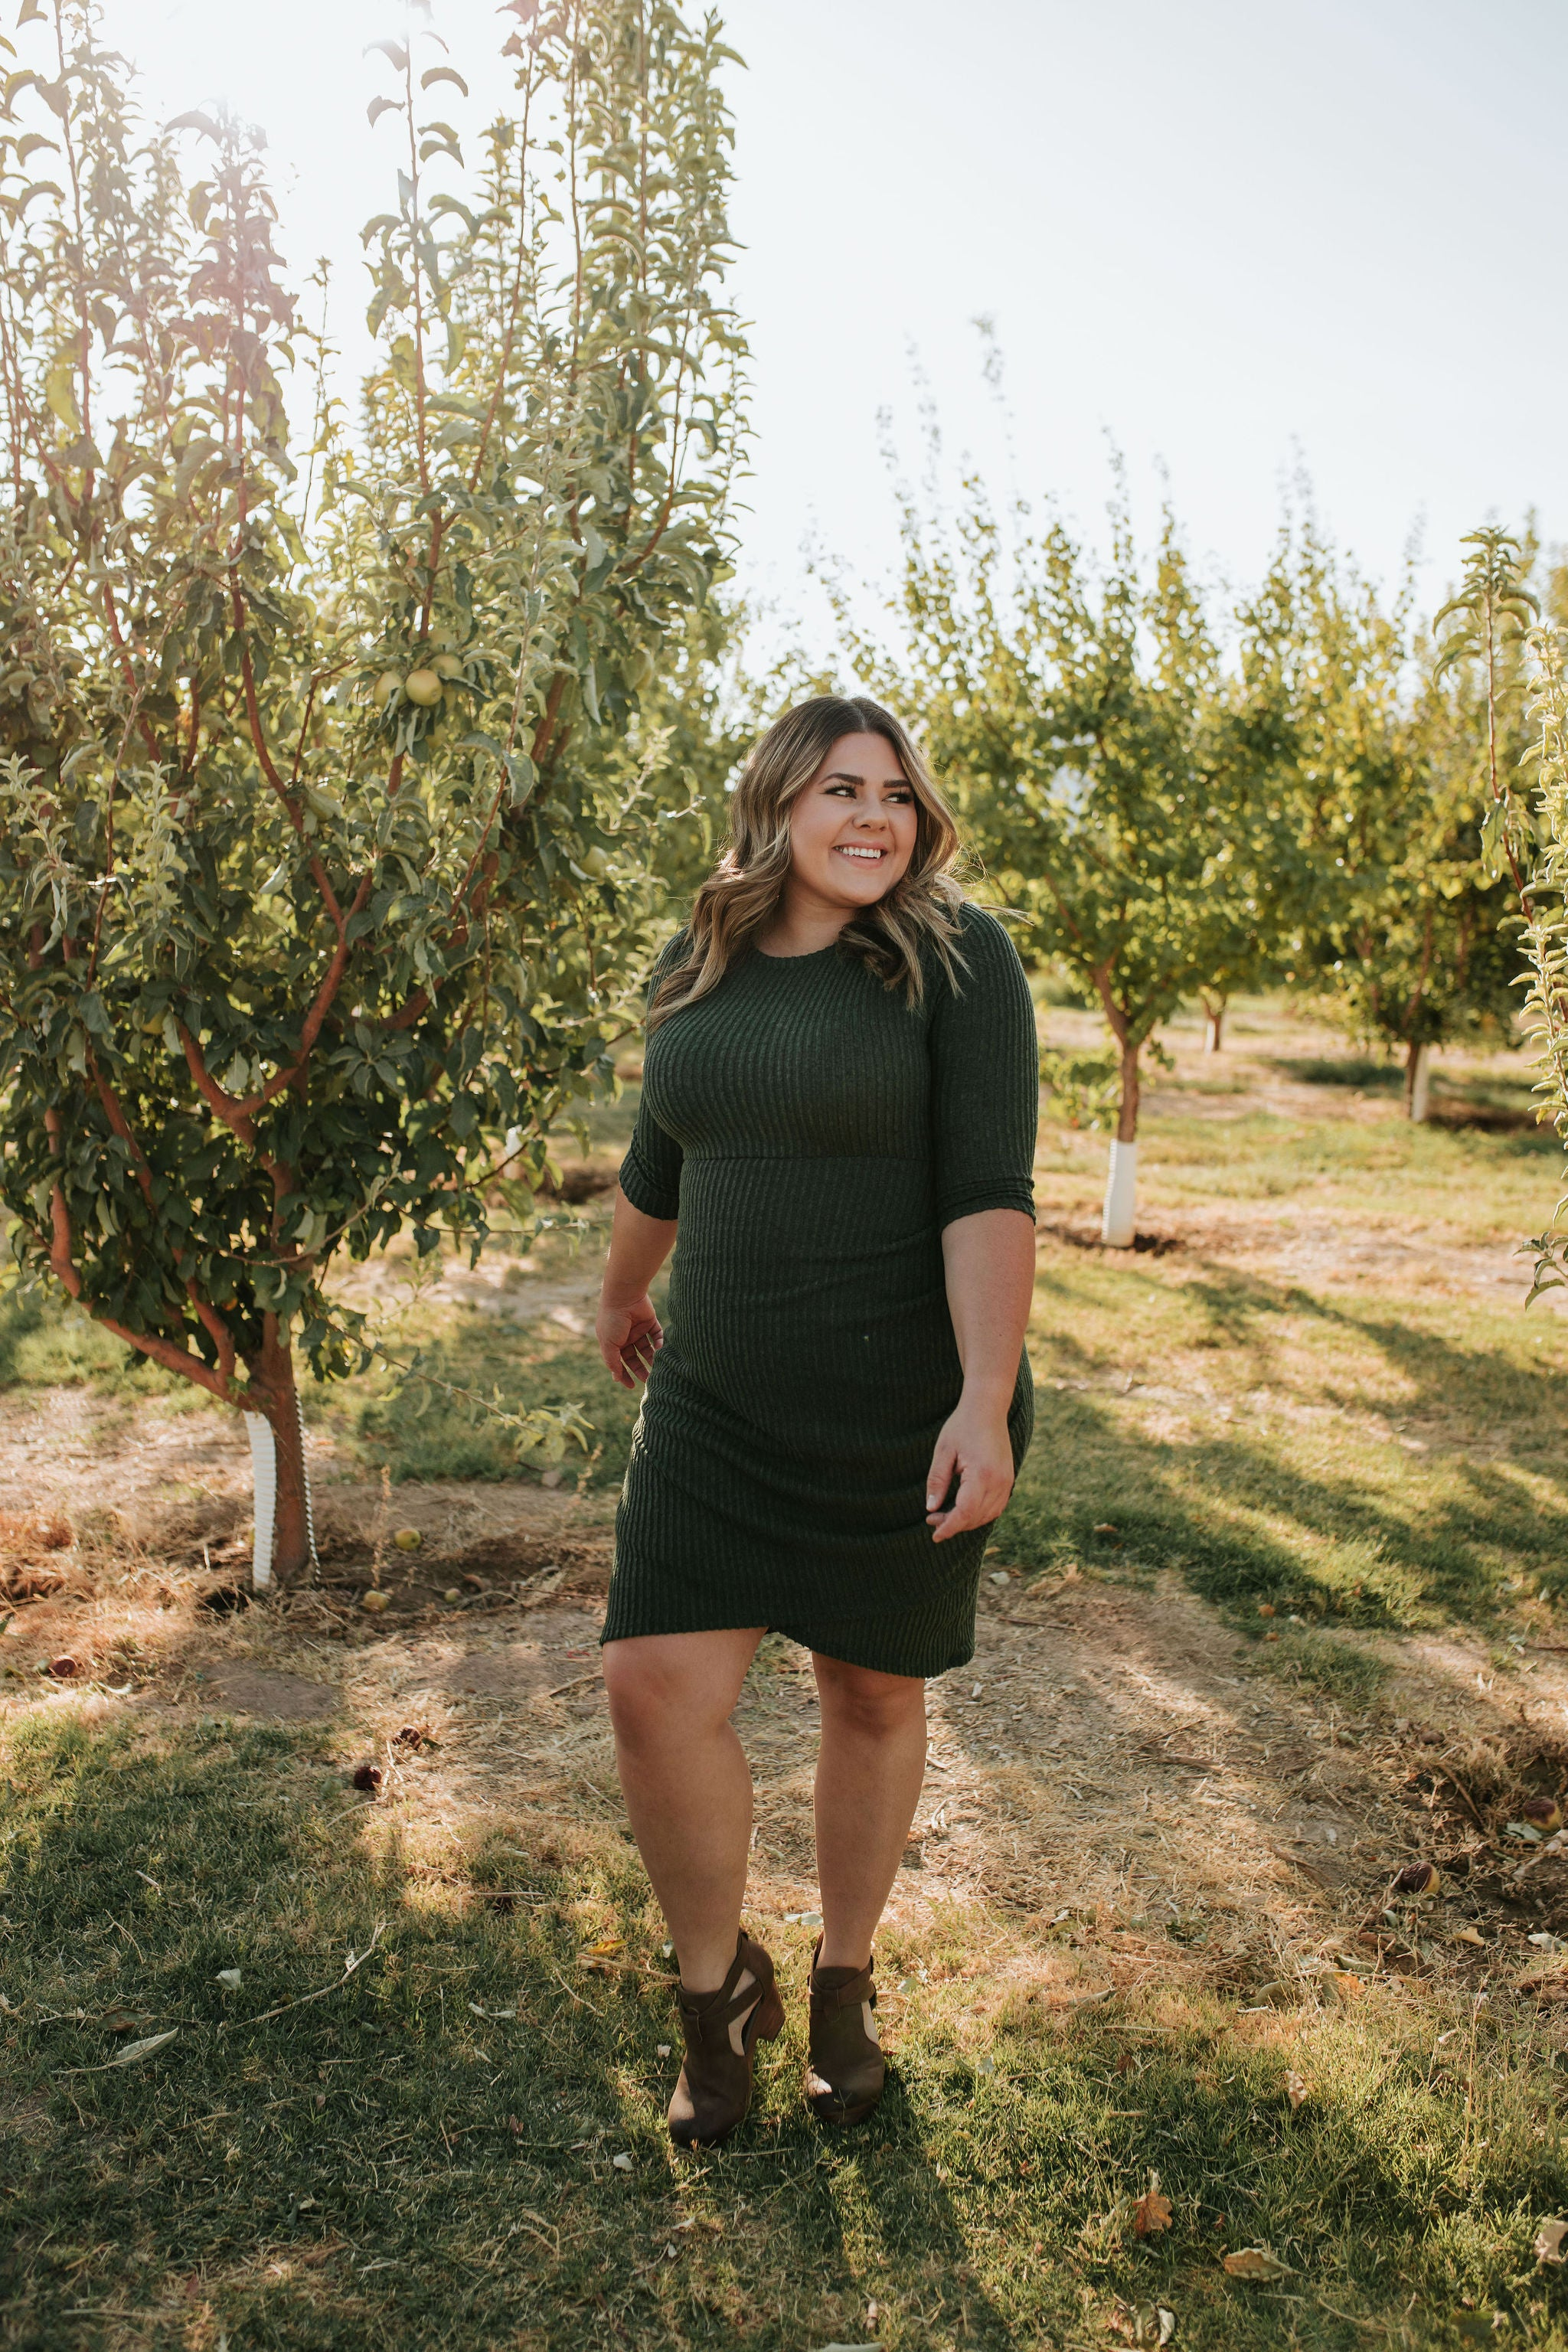 THE LUCKY YOU MIDI DRESS IN OLIVE